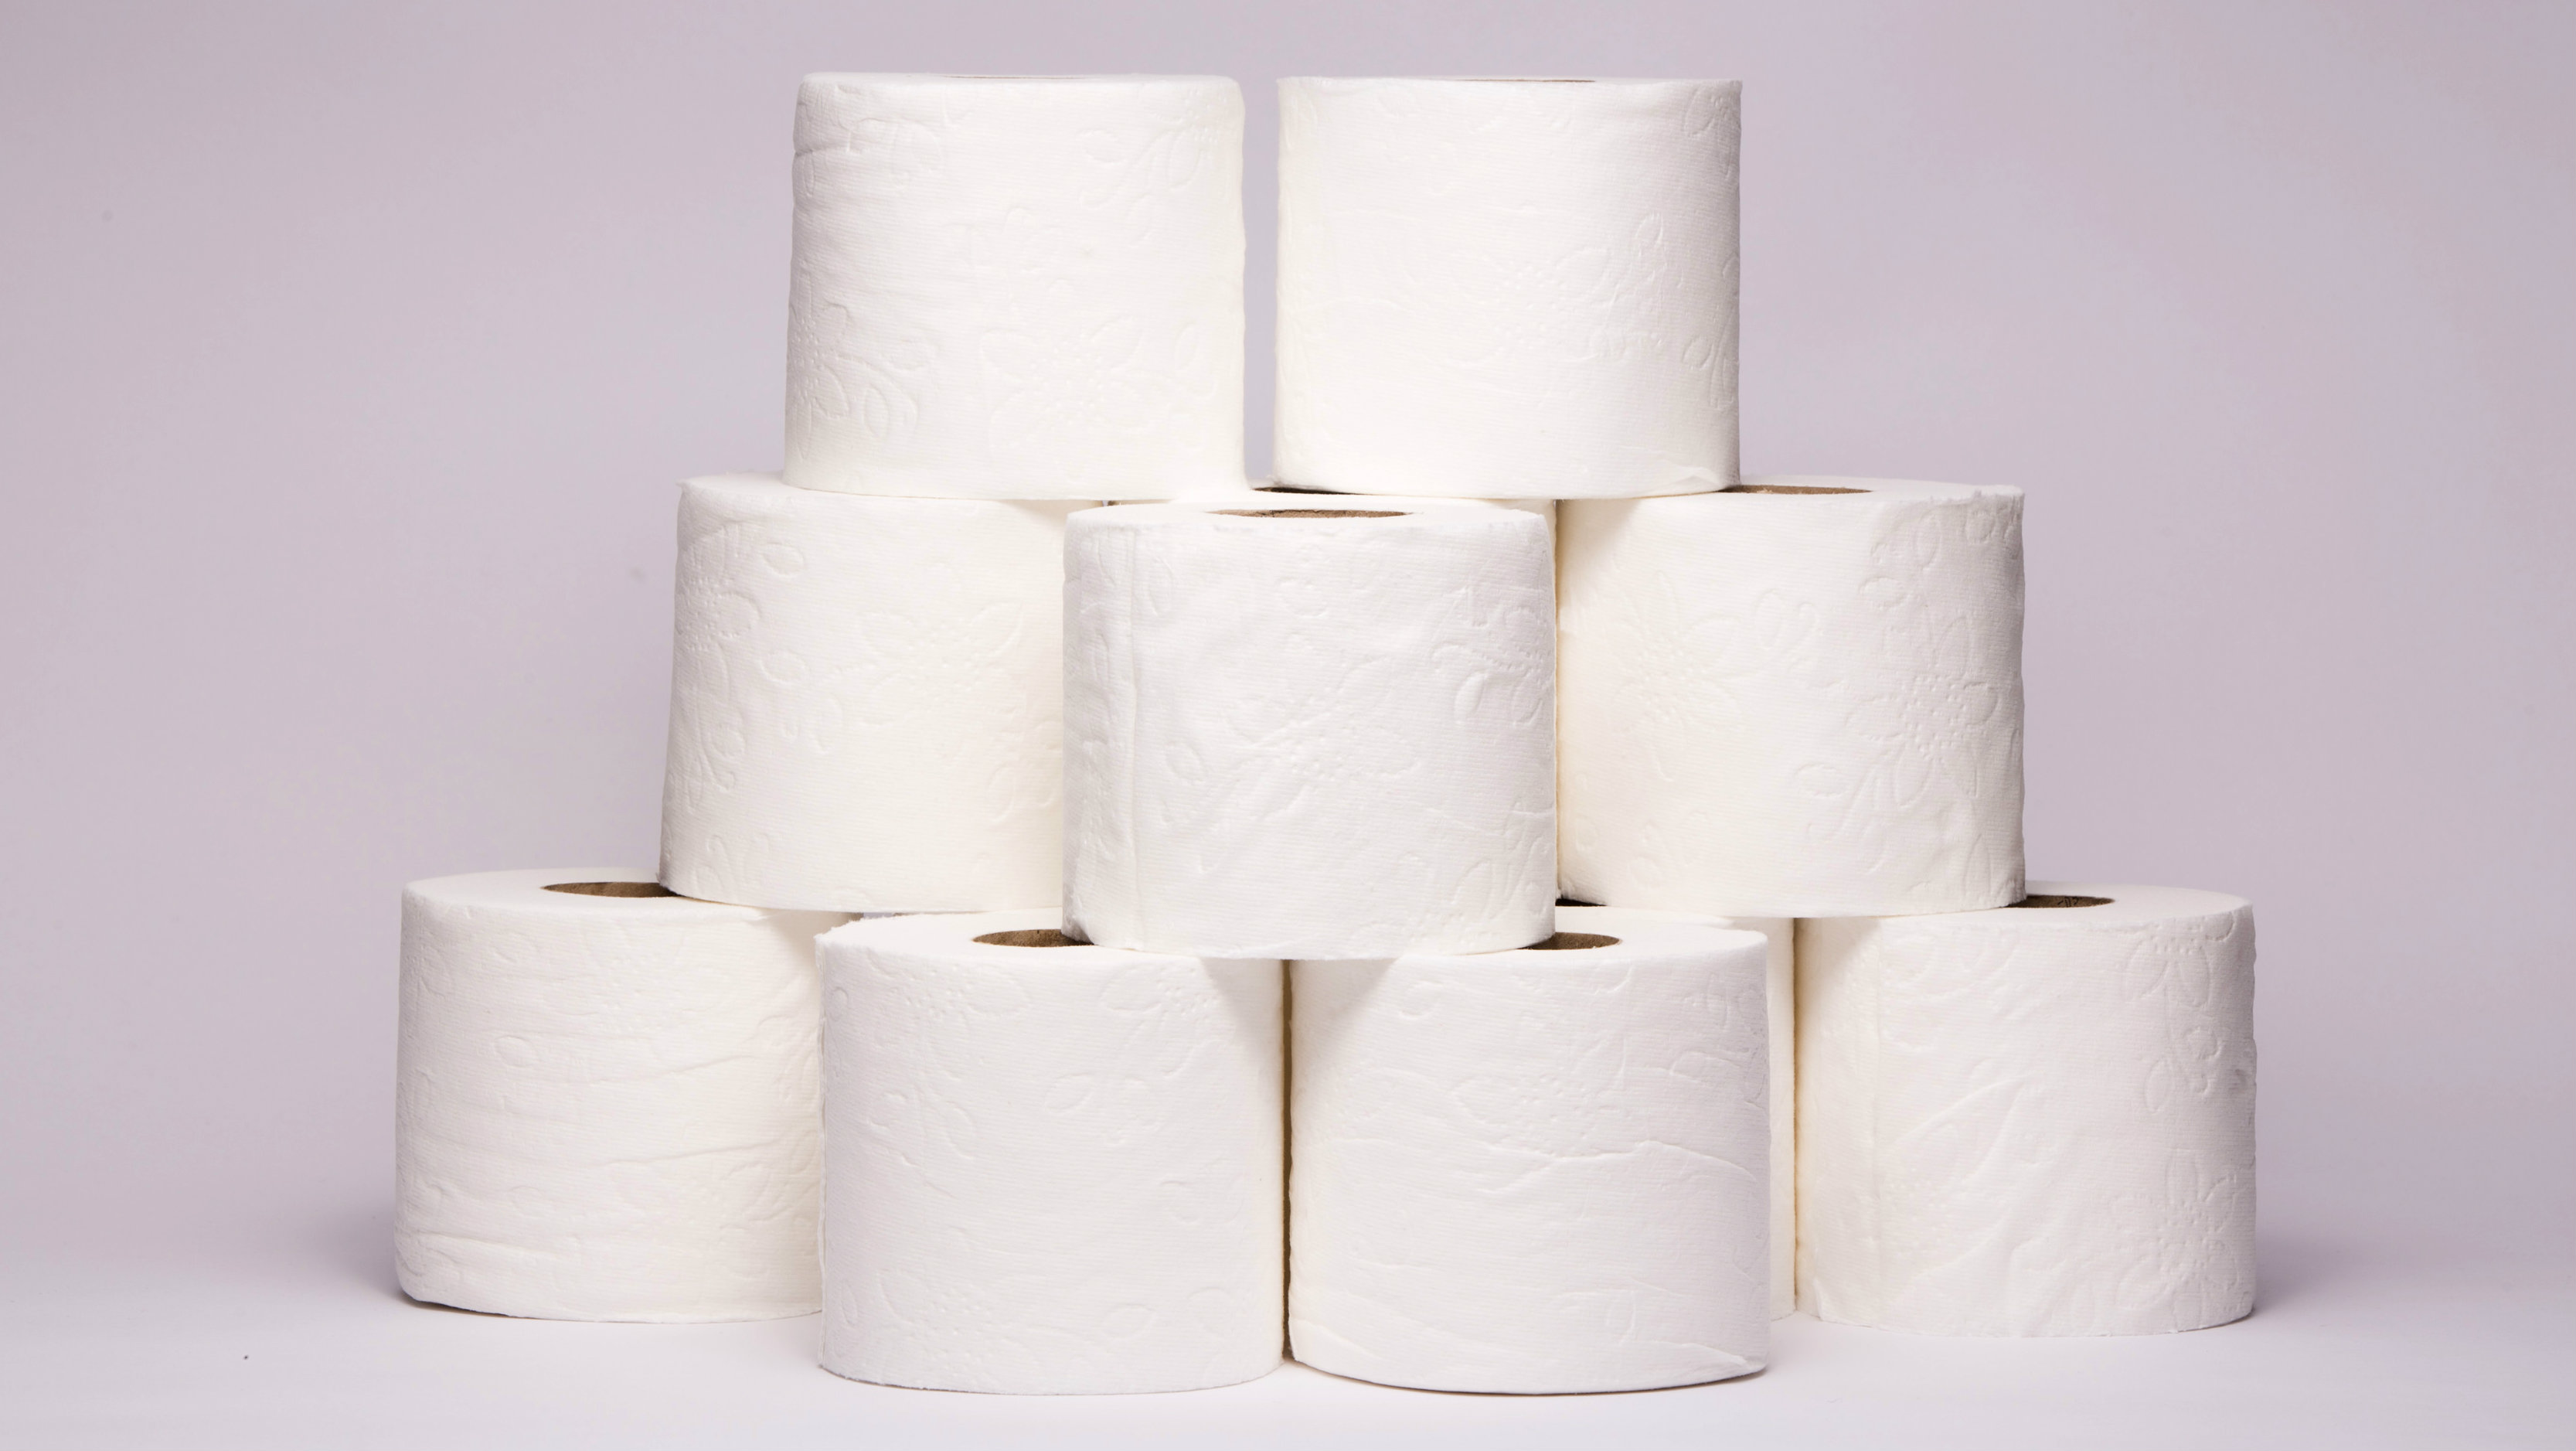 A stack of toilet paper against a neutral background.